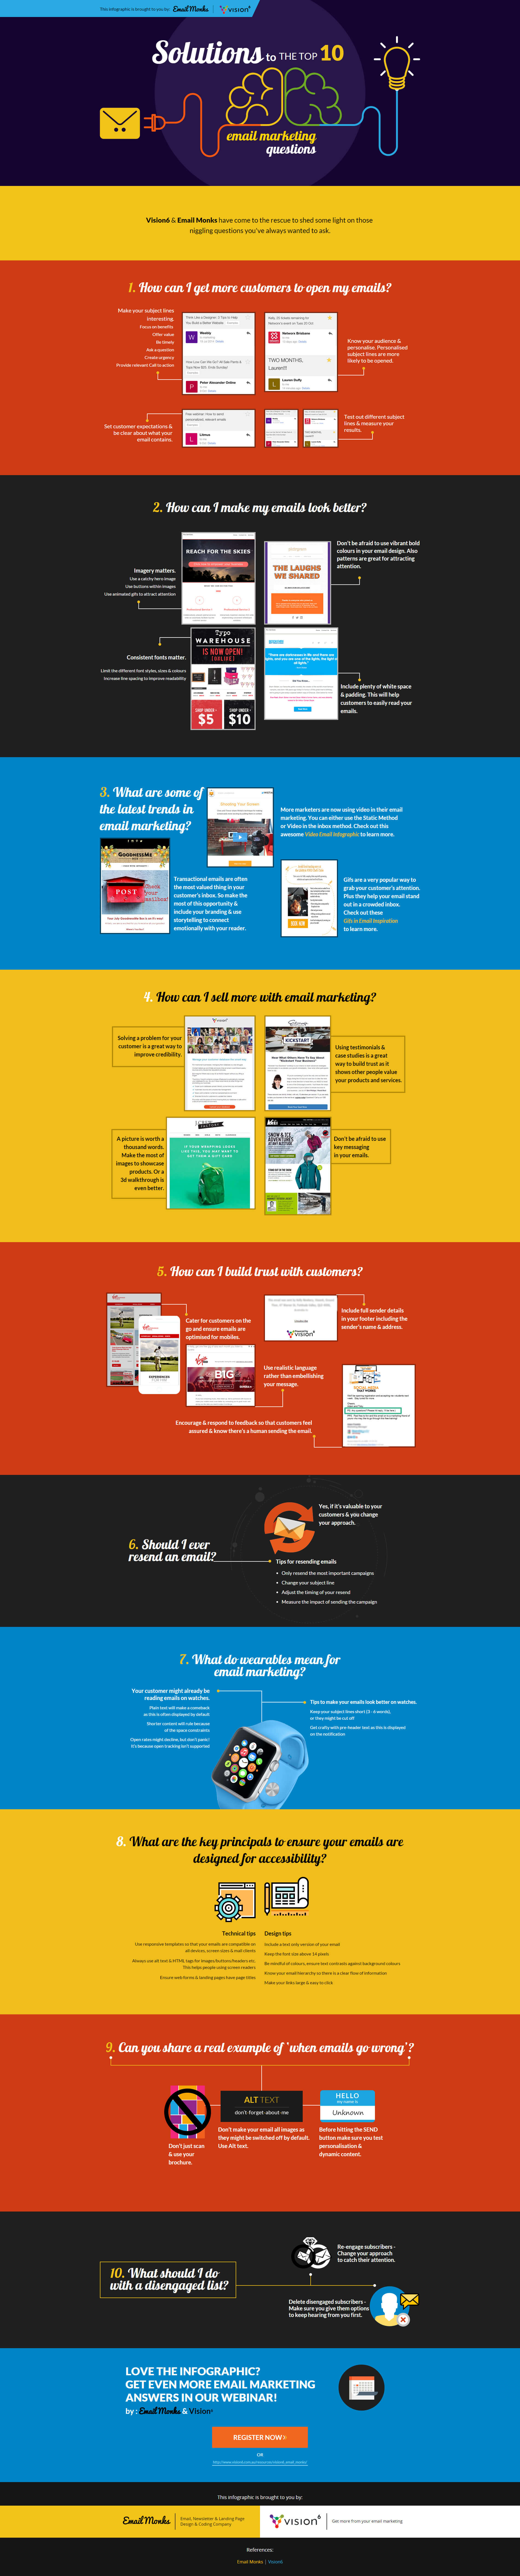 solutions-to-top-10-email-marketing-questions-infographic (1)